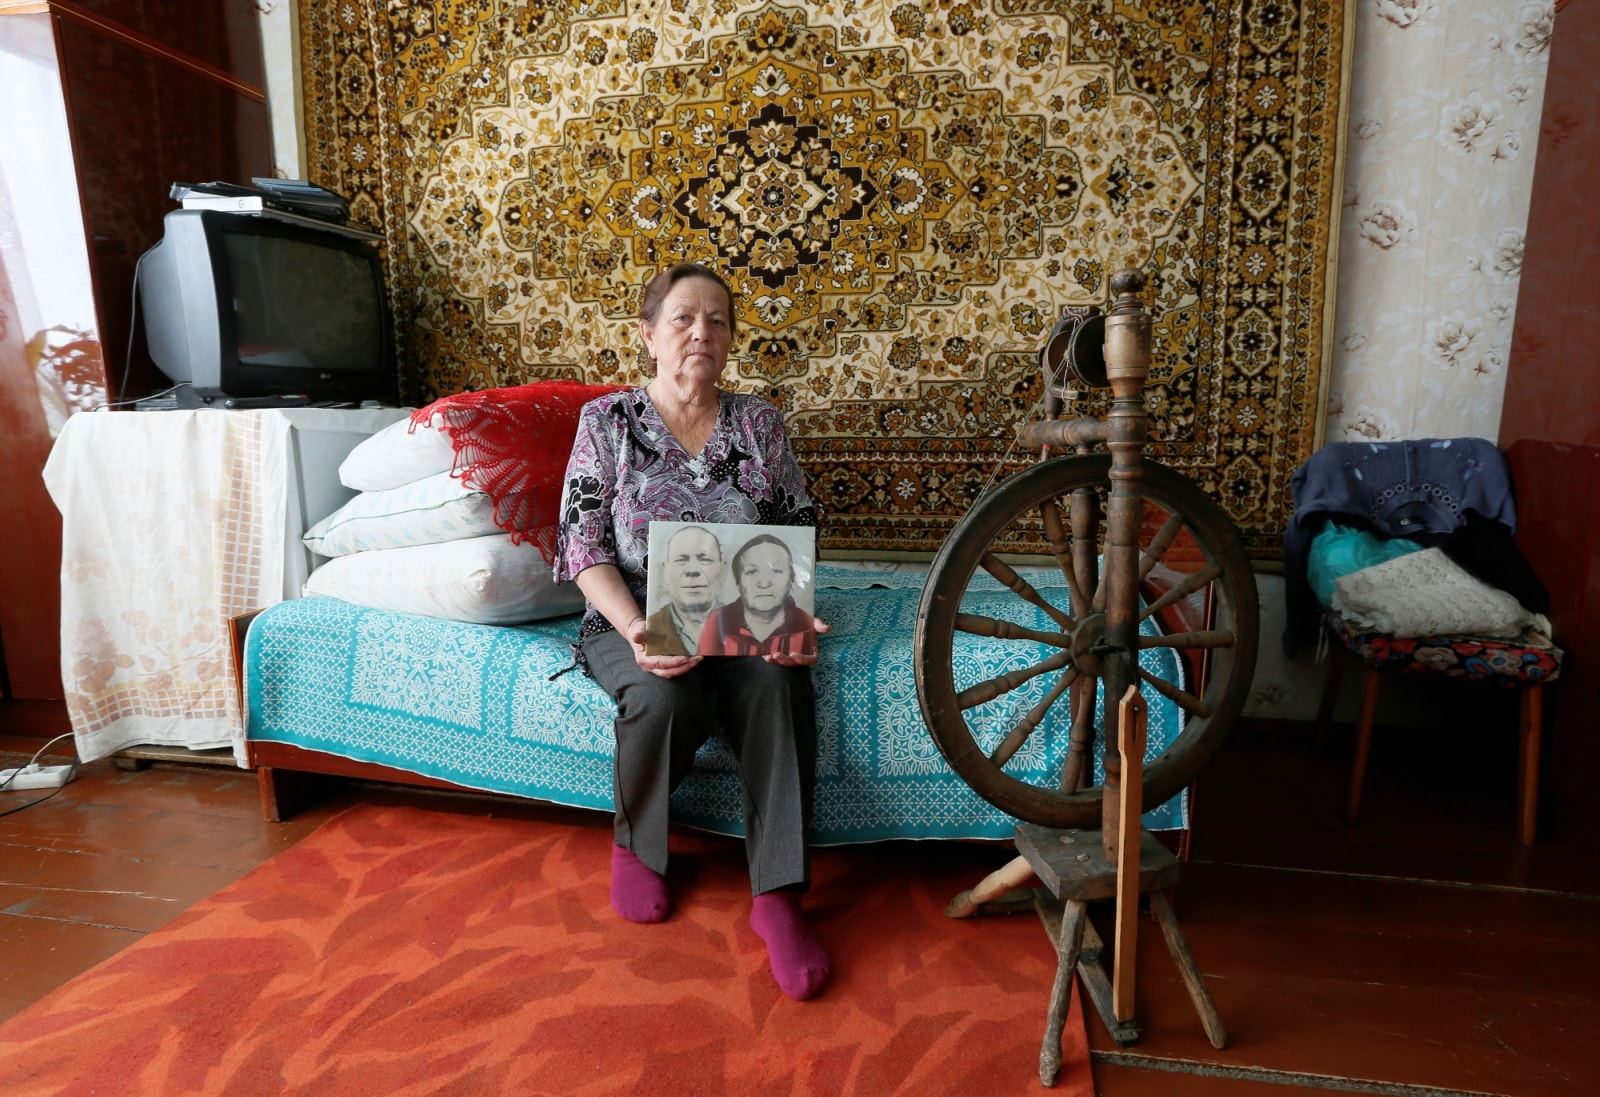 Lidia Slepets, 66, a resident of a Siberian settlement founded as a logging camp and part of the Soviet Union's Gulag prison labour system, shows a photograph of her parents while posing for a picture at her house in Tugach southeast of Krasnoyarsk, Russia October 30, 2018. The photograph shows Lidia's father, a former inmate of the Kraslag prison camp Gerasim Bersenyov (L), who married Anastasia Gaidaichuk (R), then a widow of a camp guard. REUTERS/Ilya Naymushin